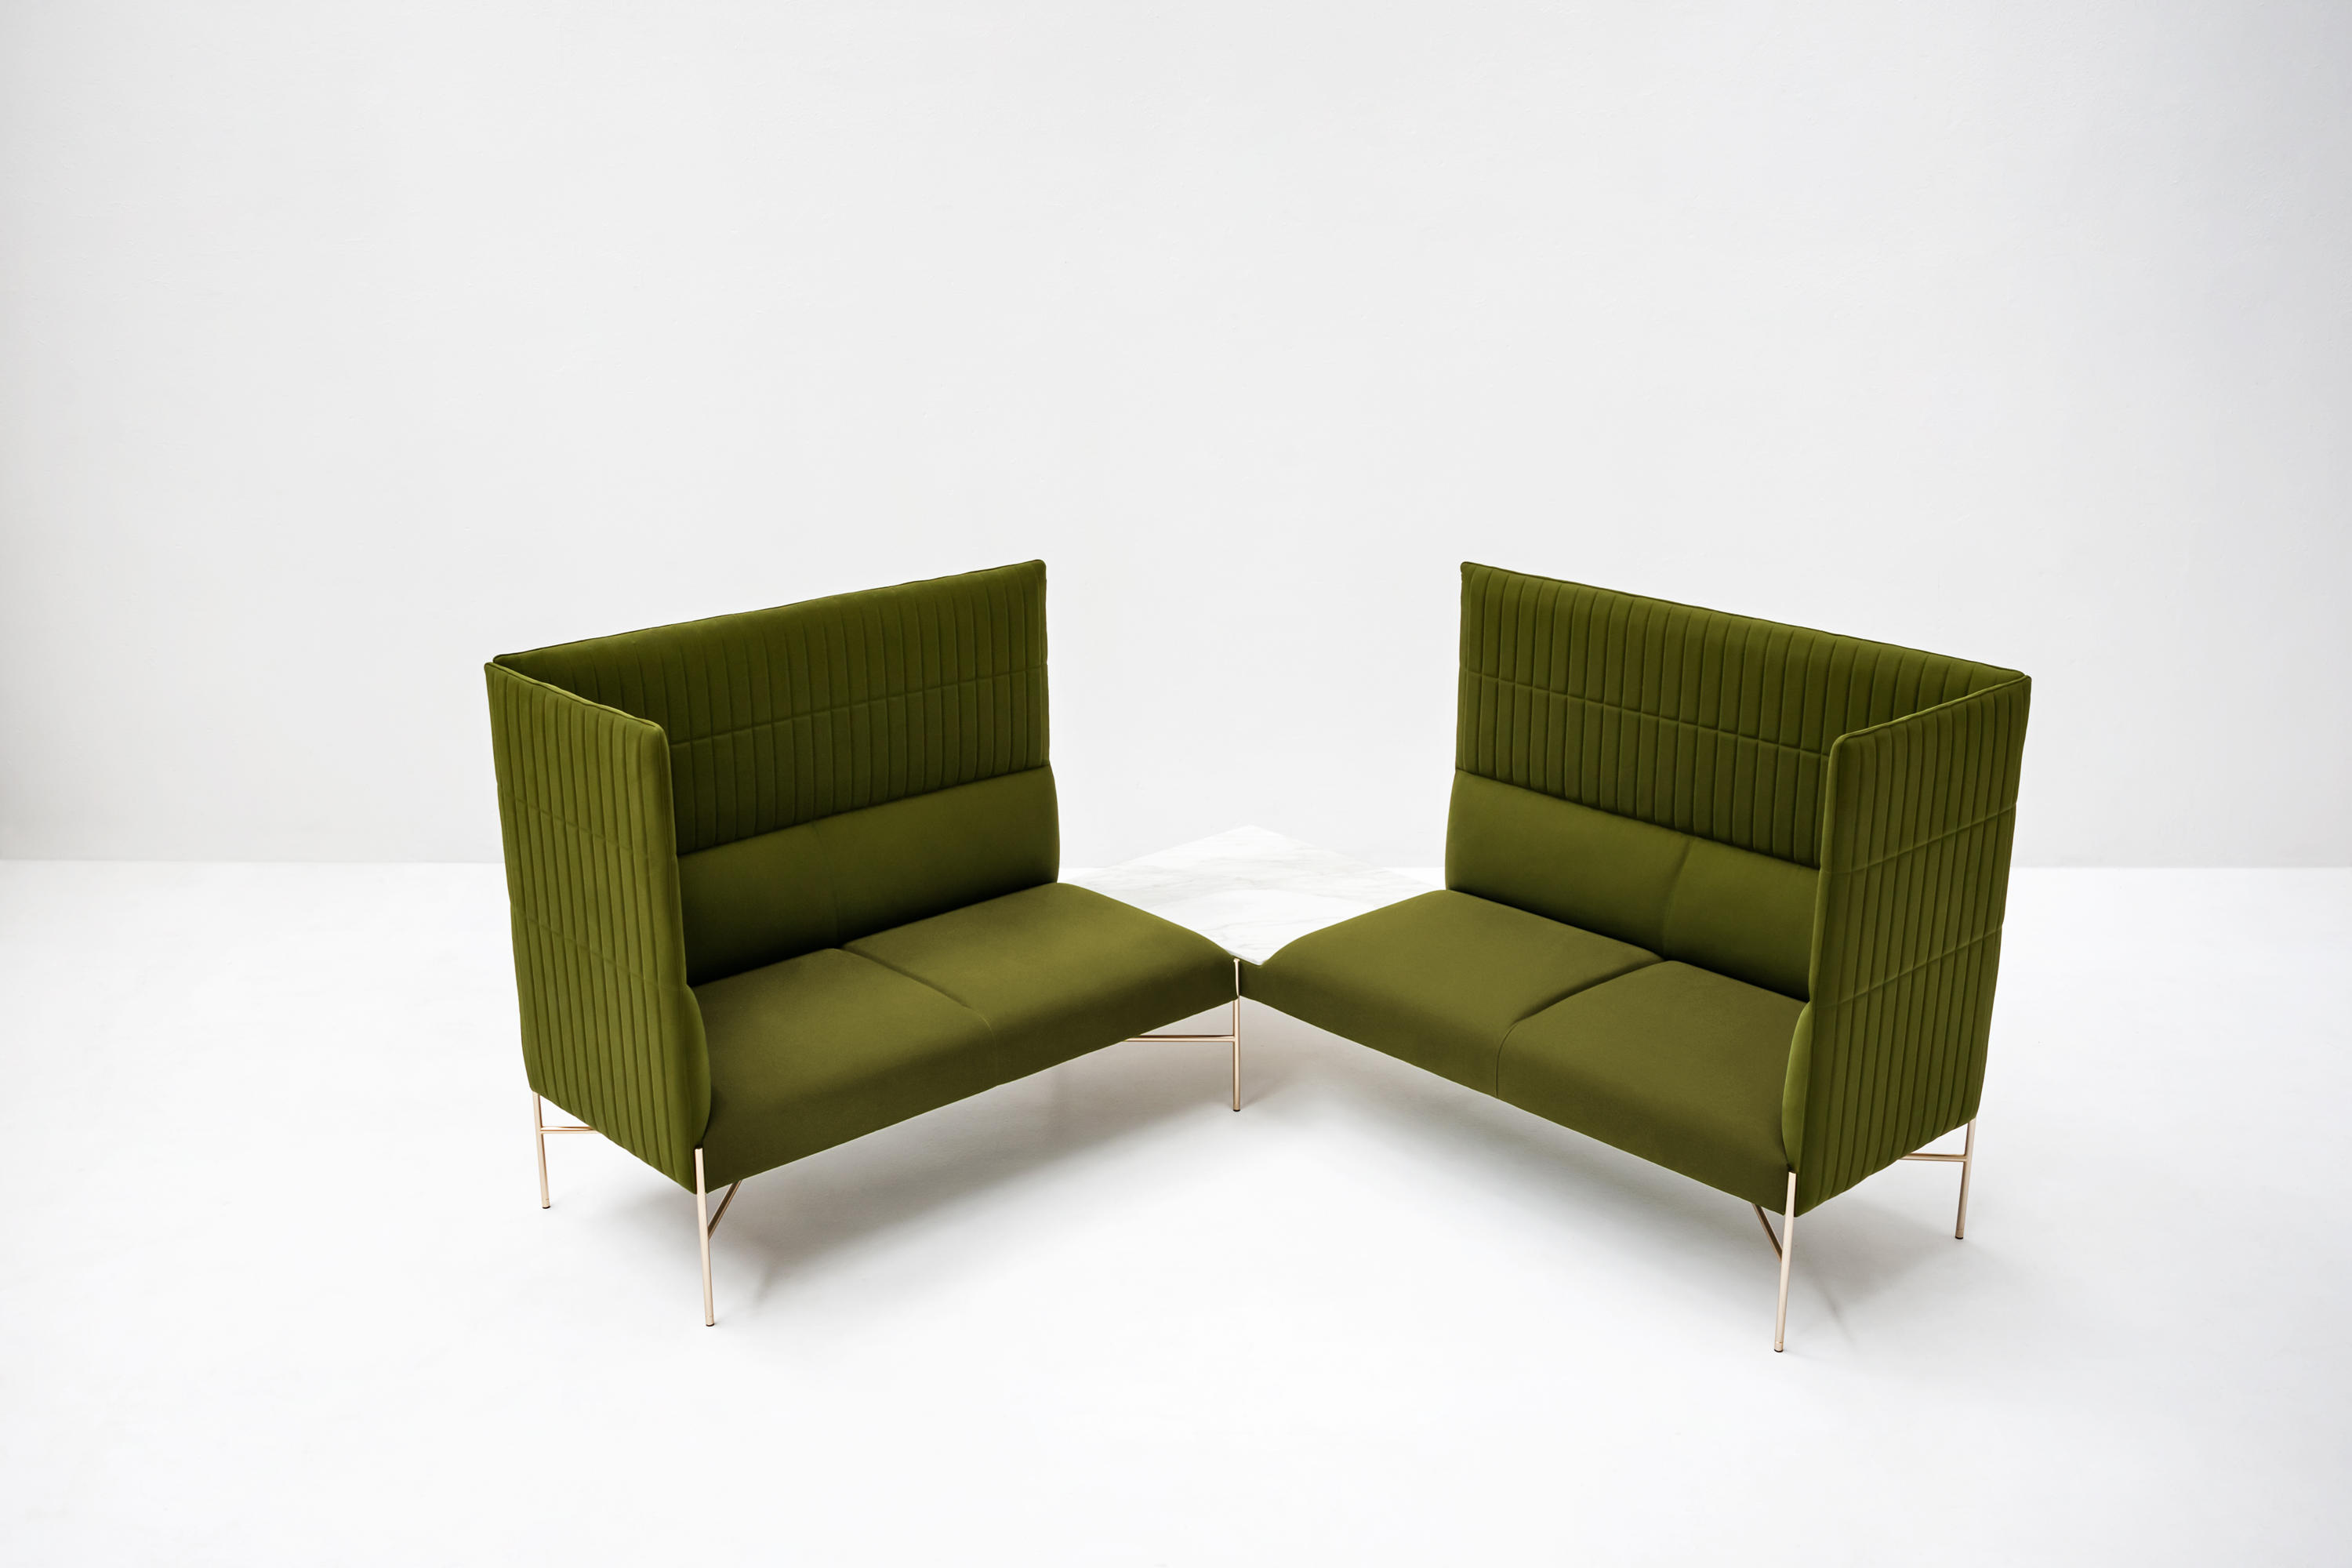 Chill Out High By Tacchini Italia Modular Seating Systems